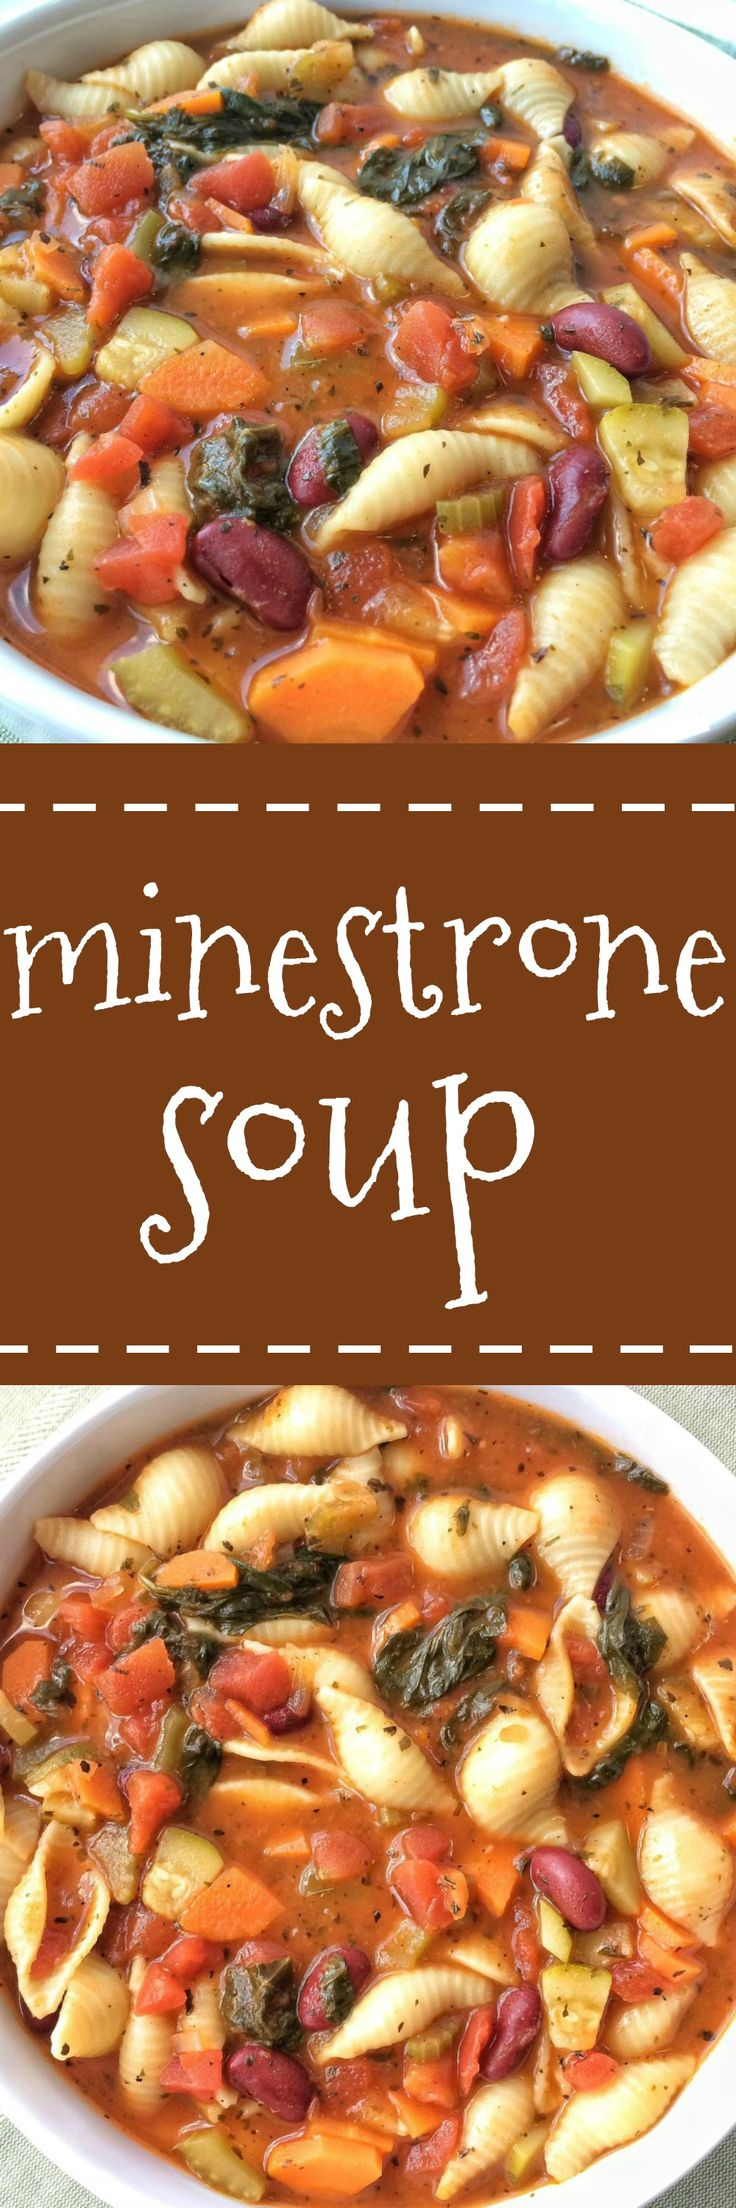 Classic Minestrone soup with a tomato vegetable broth base and loaded to the max with fresh veggies, beans, and tender pasta. Simmer with some spices and you have a delicious & healthy bowl of soup for dinner.